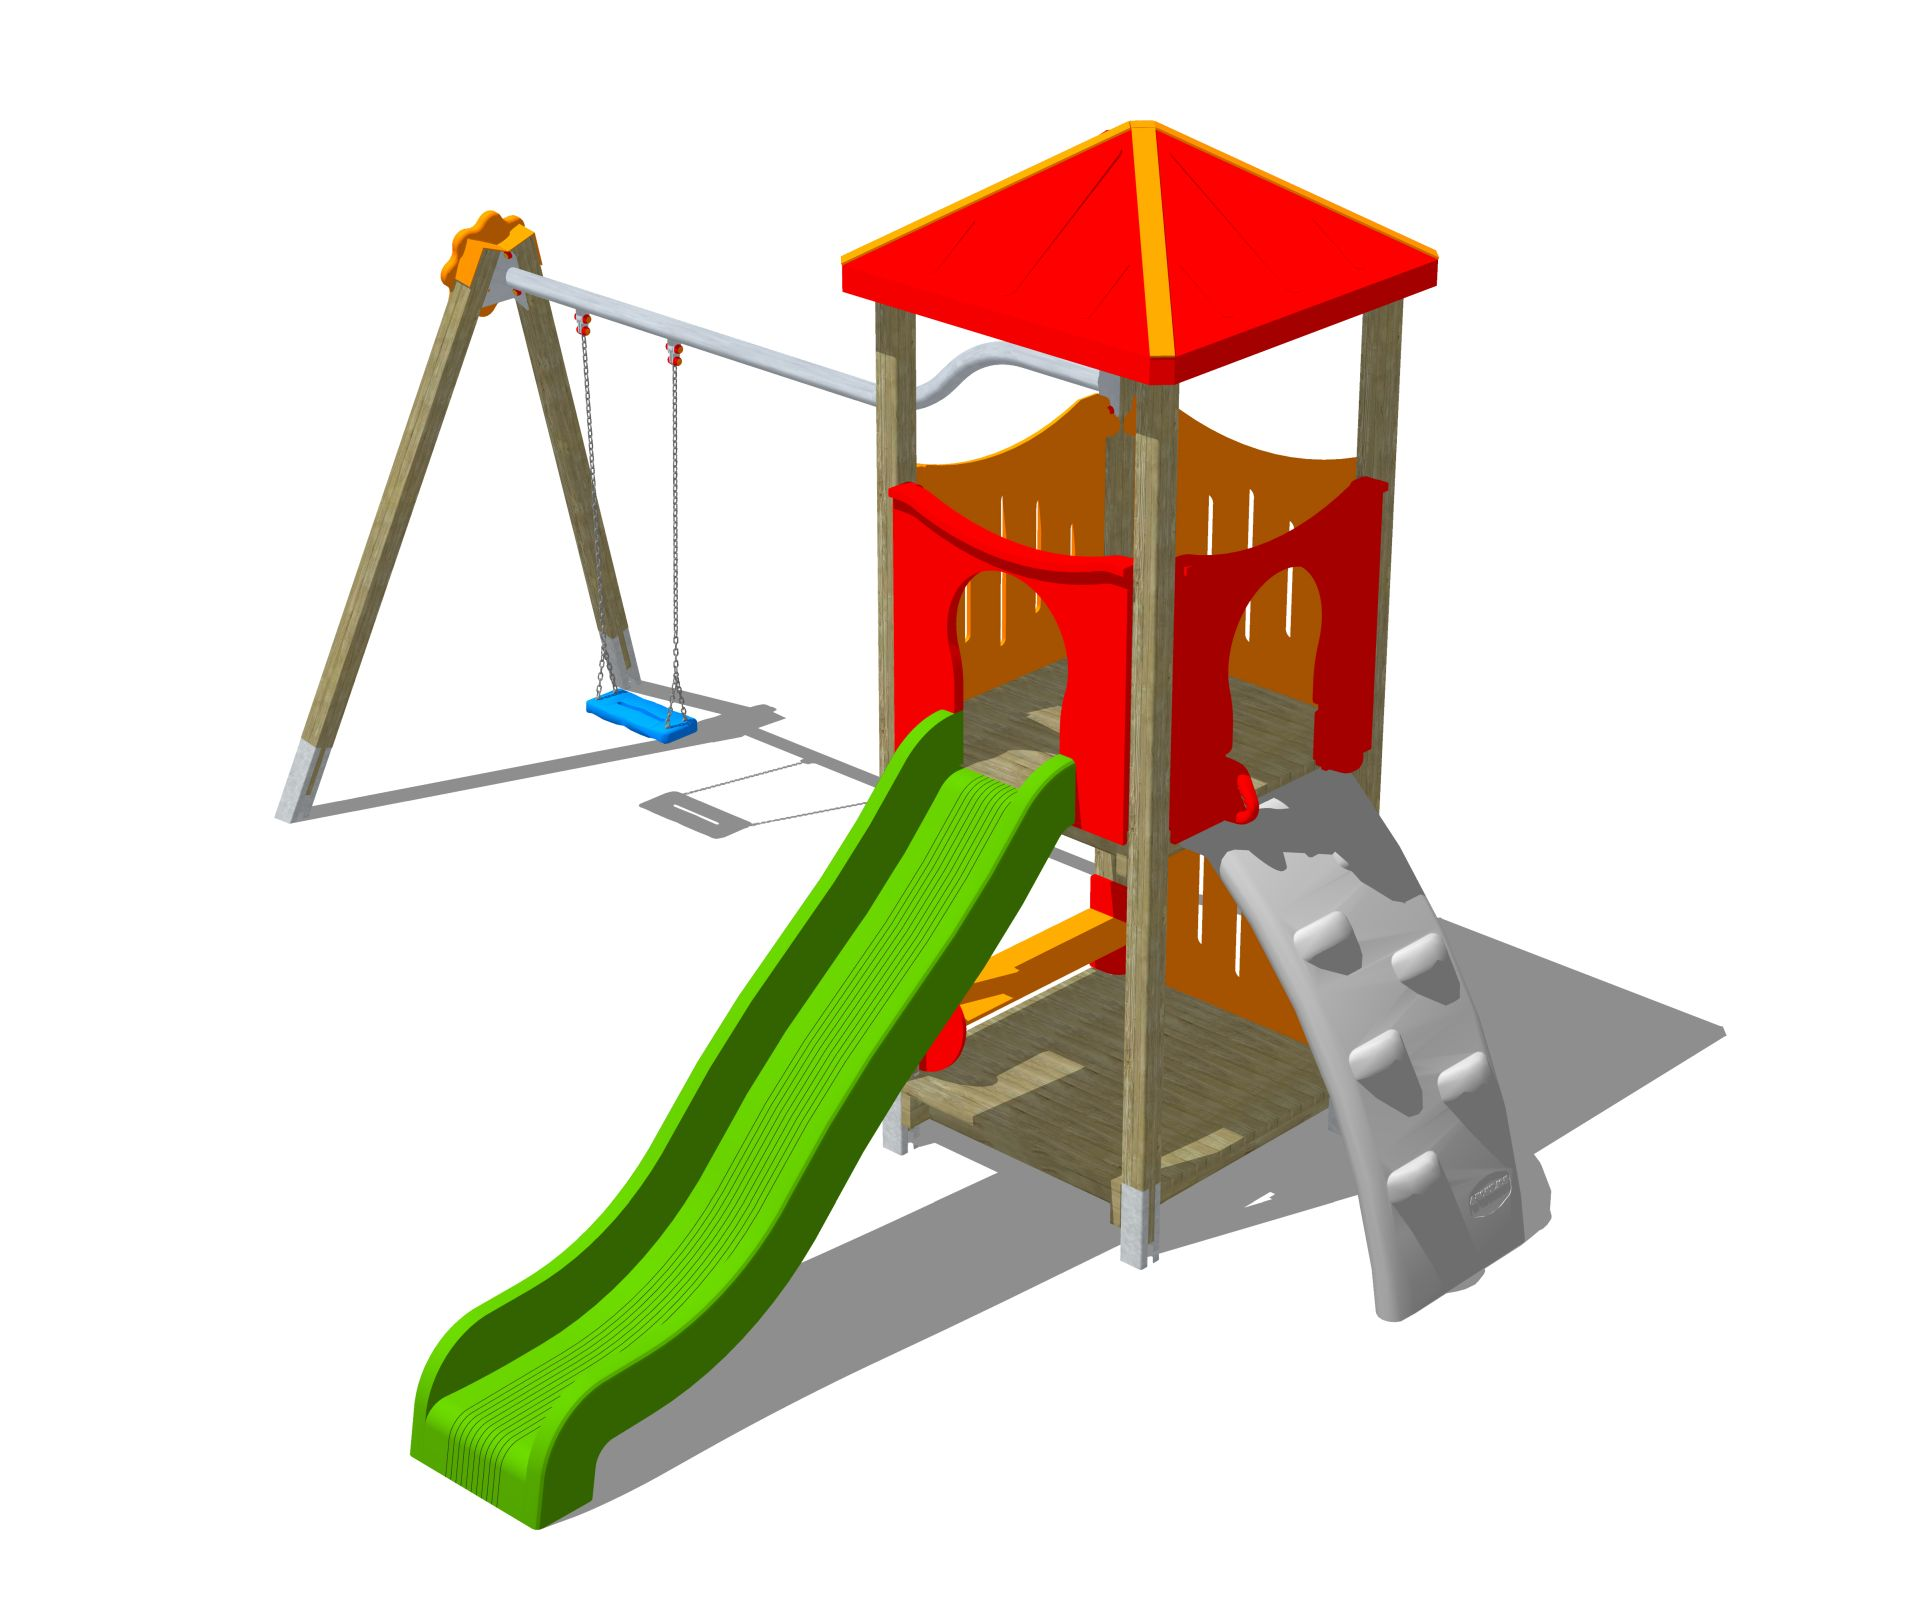 Holzhof MAX & SULTAN Max 1 tower, slide h 144, polyethylene ramp + swing 1 palm shape seat